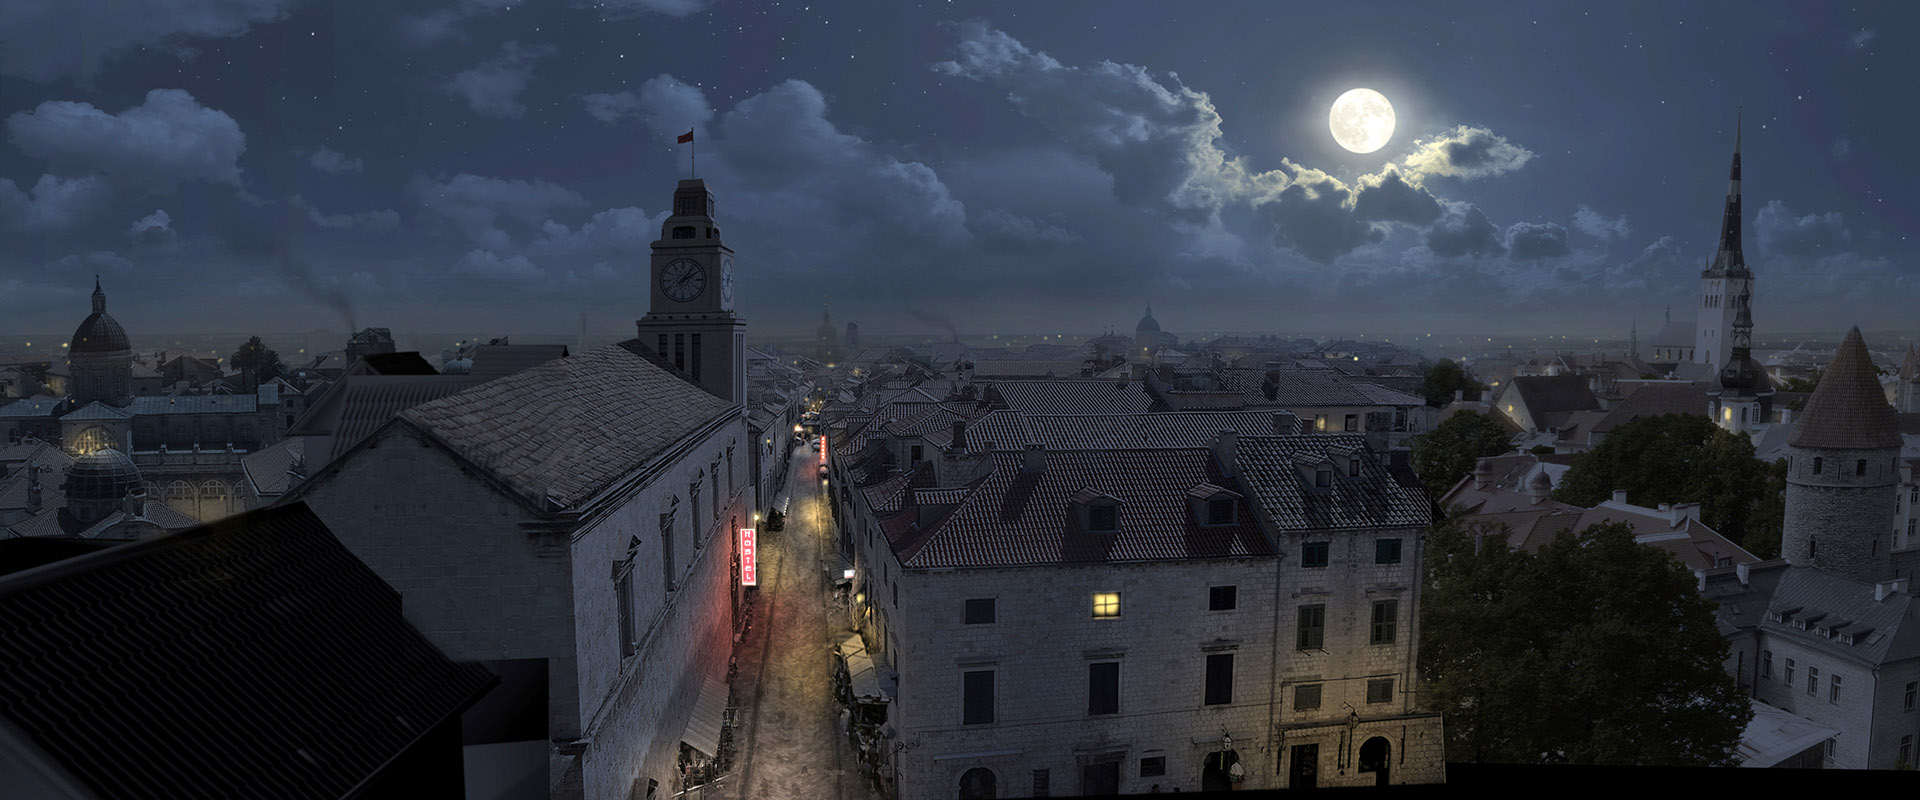 VFX environment of an old town in moon light.